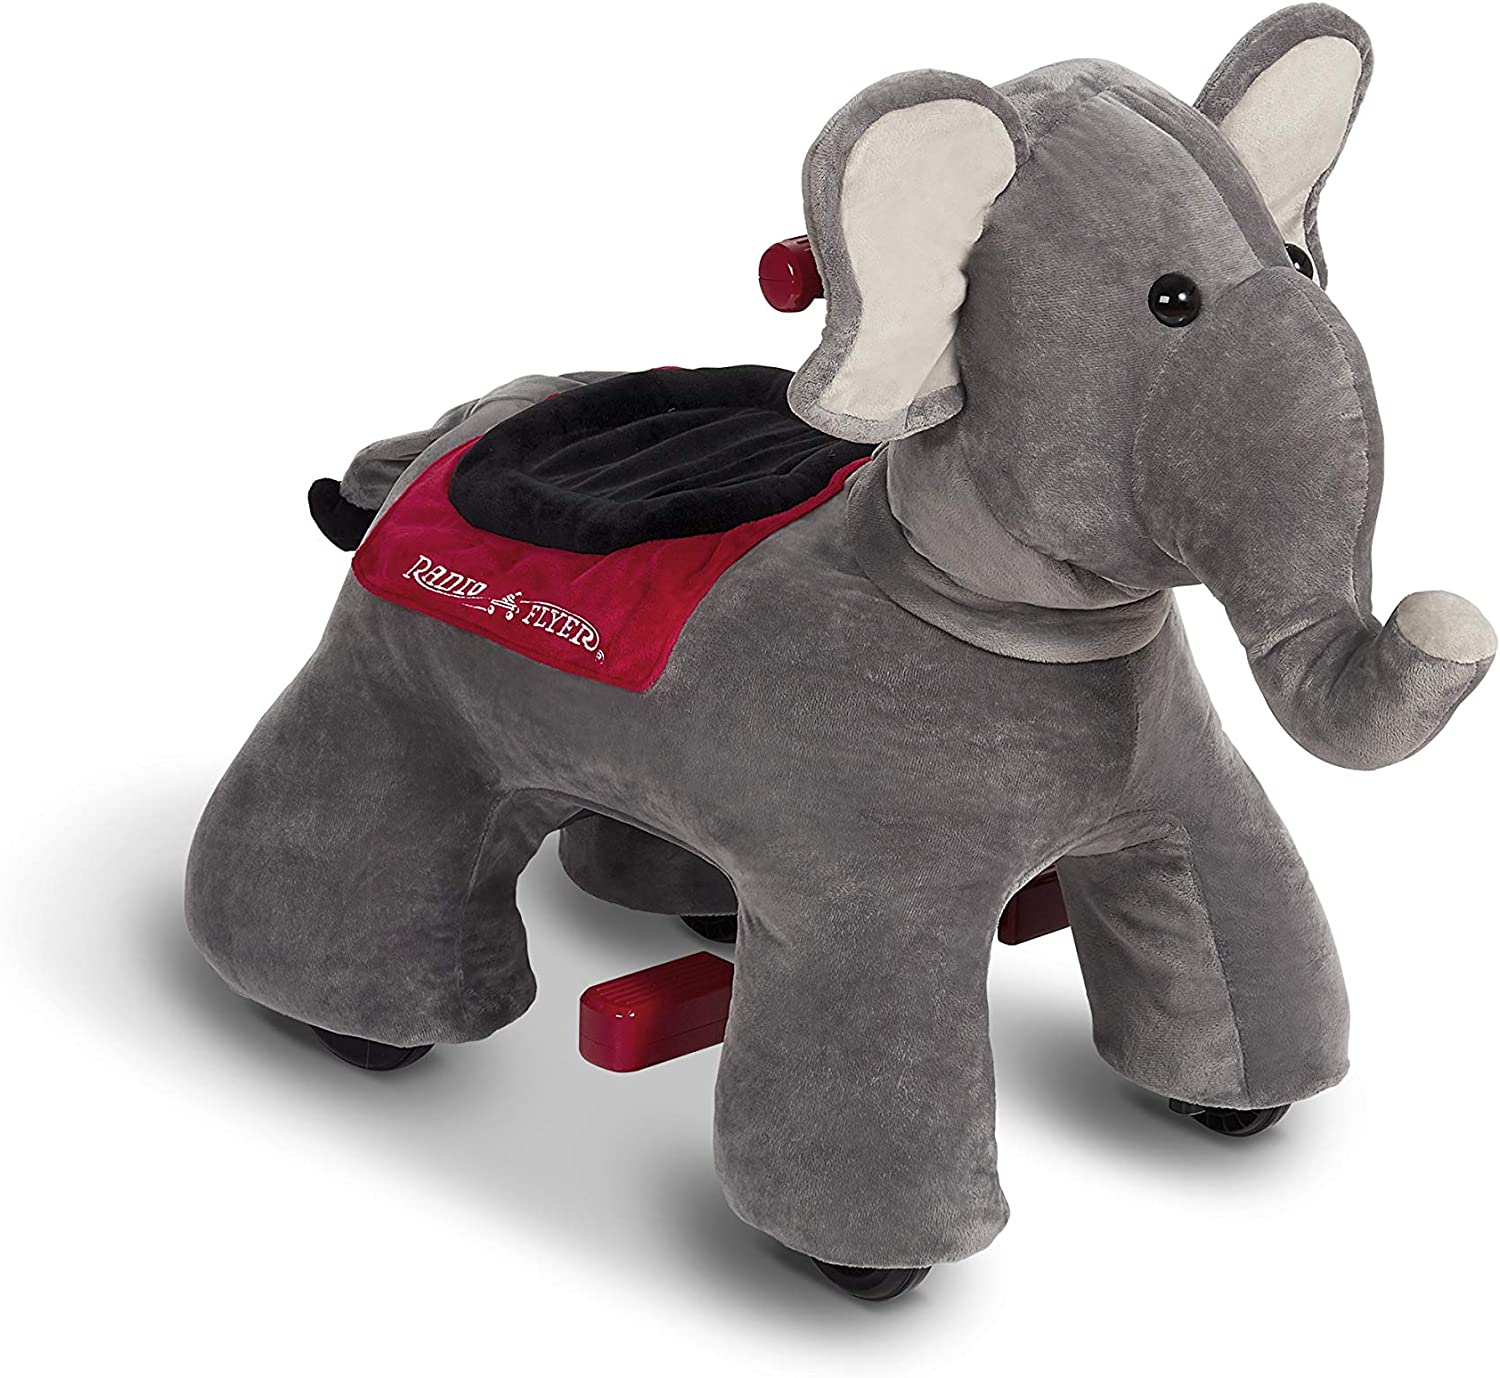 Radio Flyer Peanut Electric Ride On Elephant with Sounds, Grey